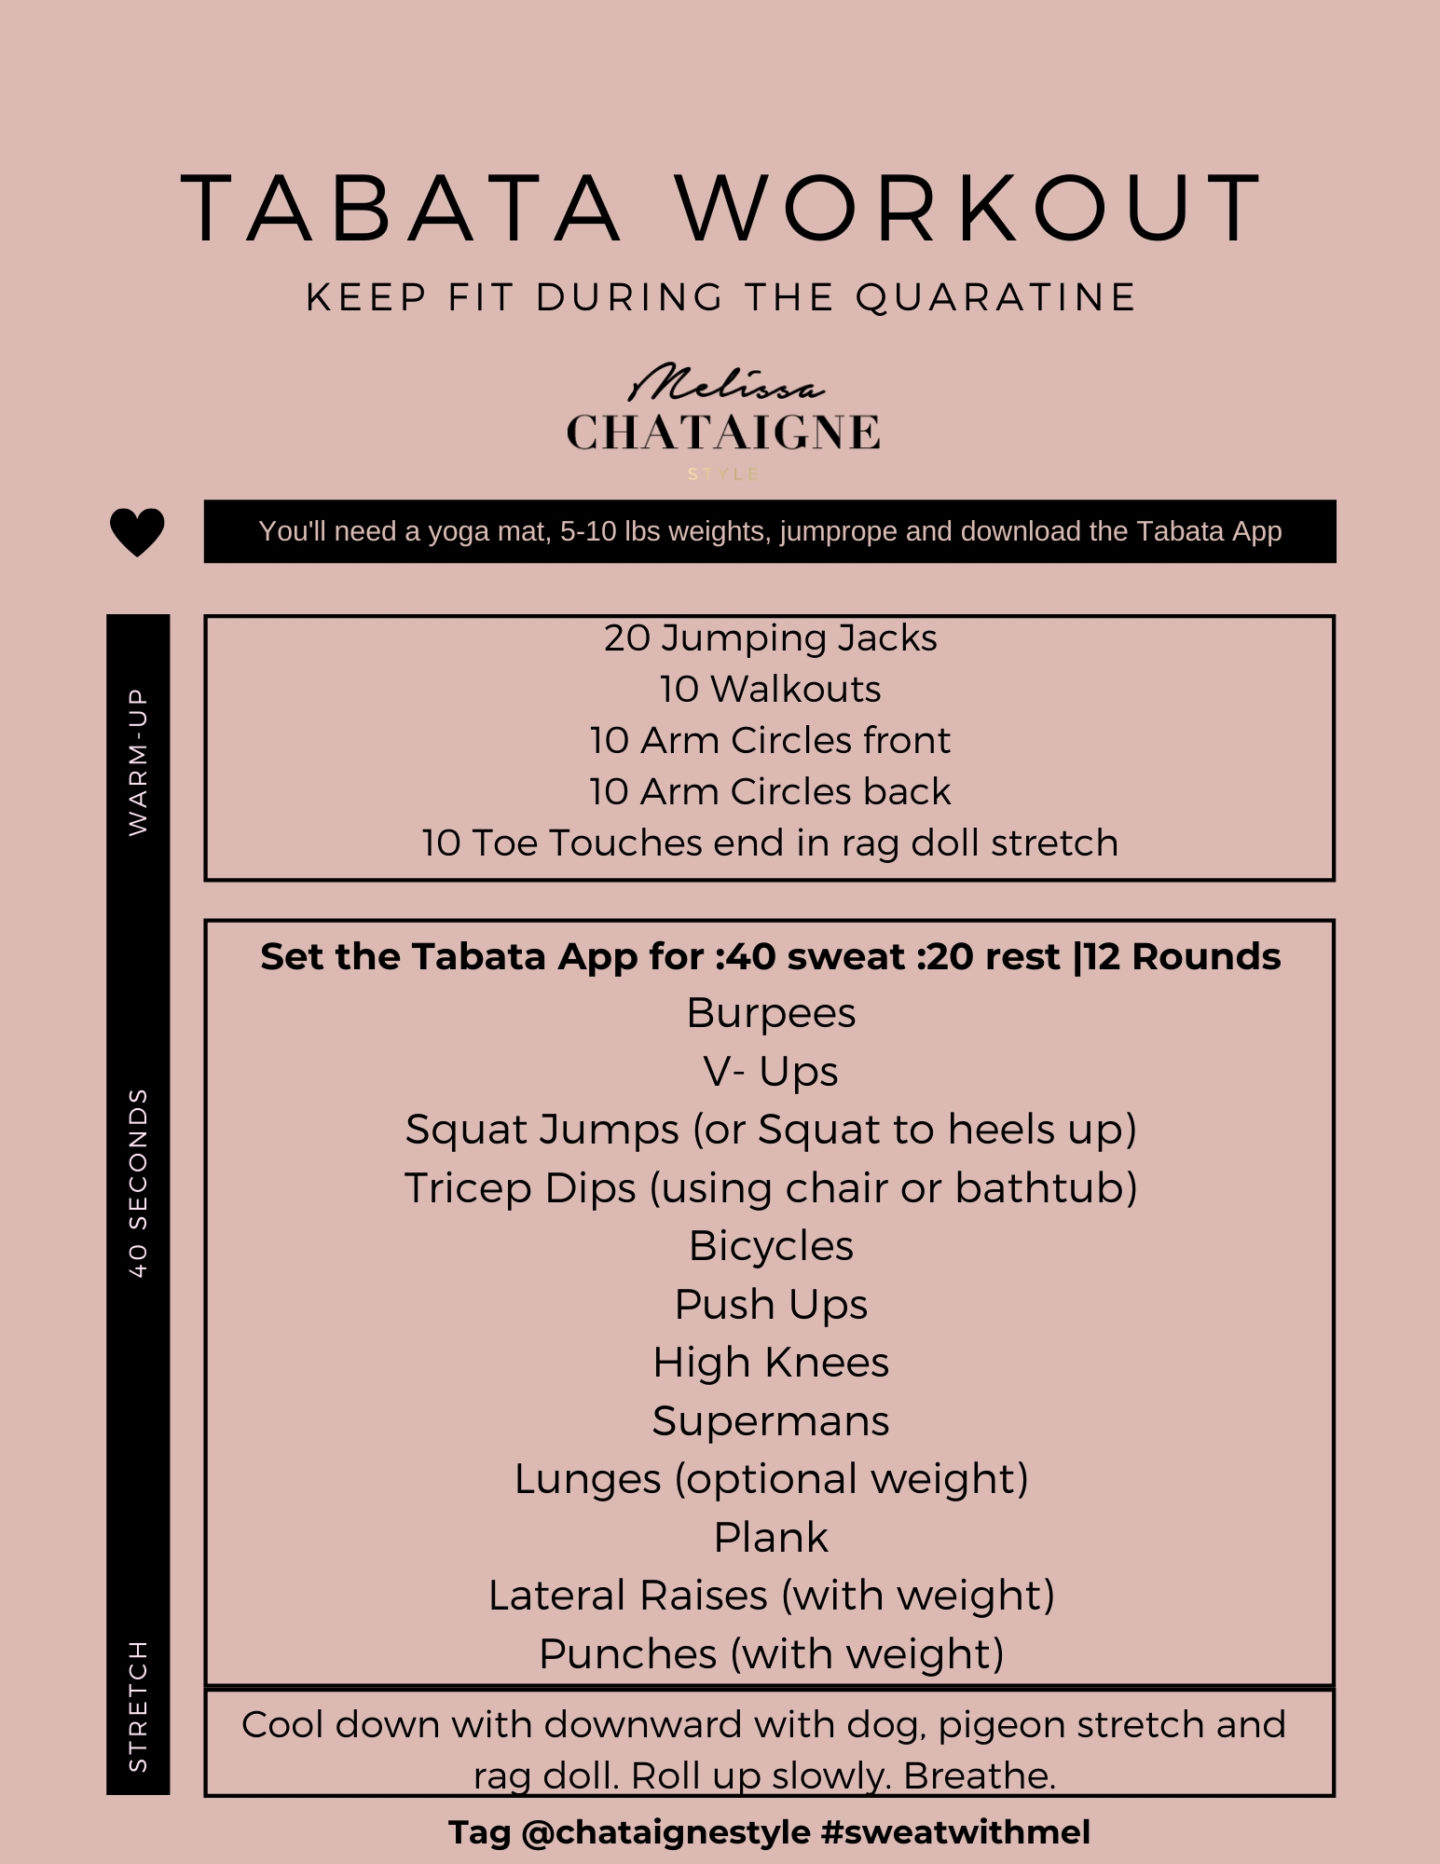 Chataigne's Tabata workout for at home